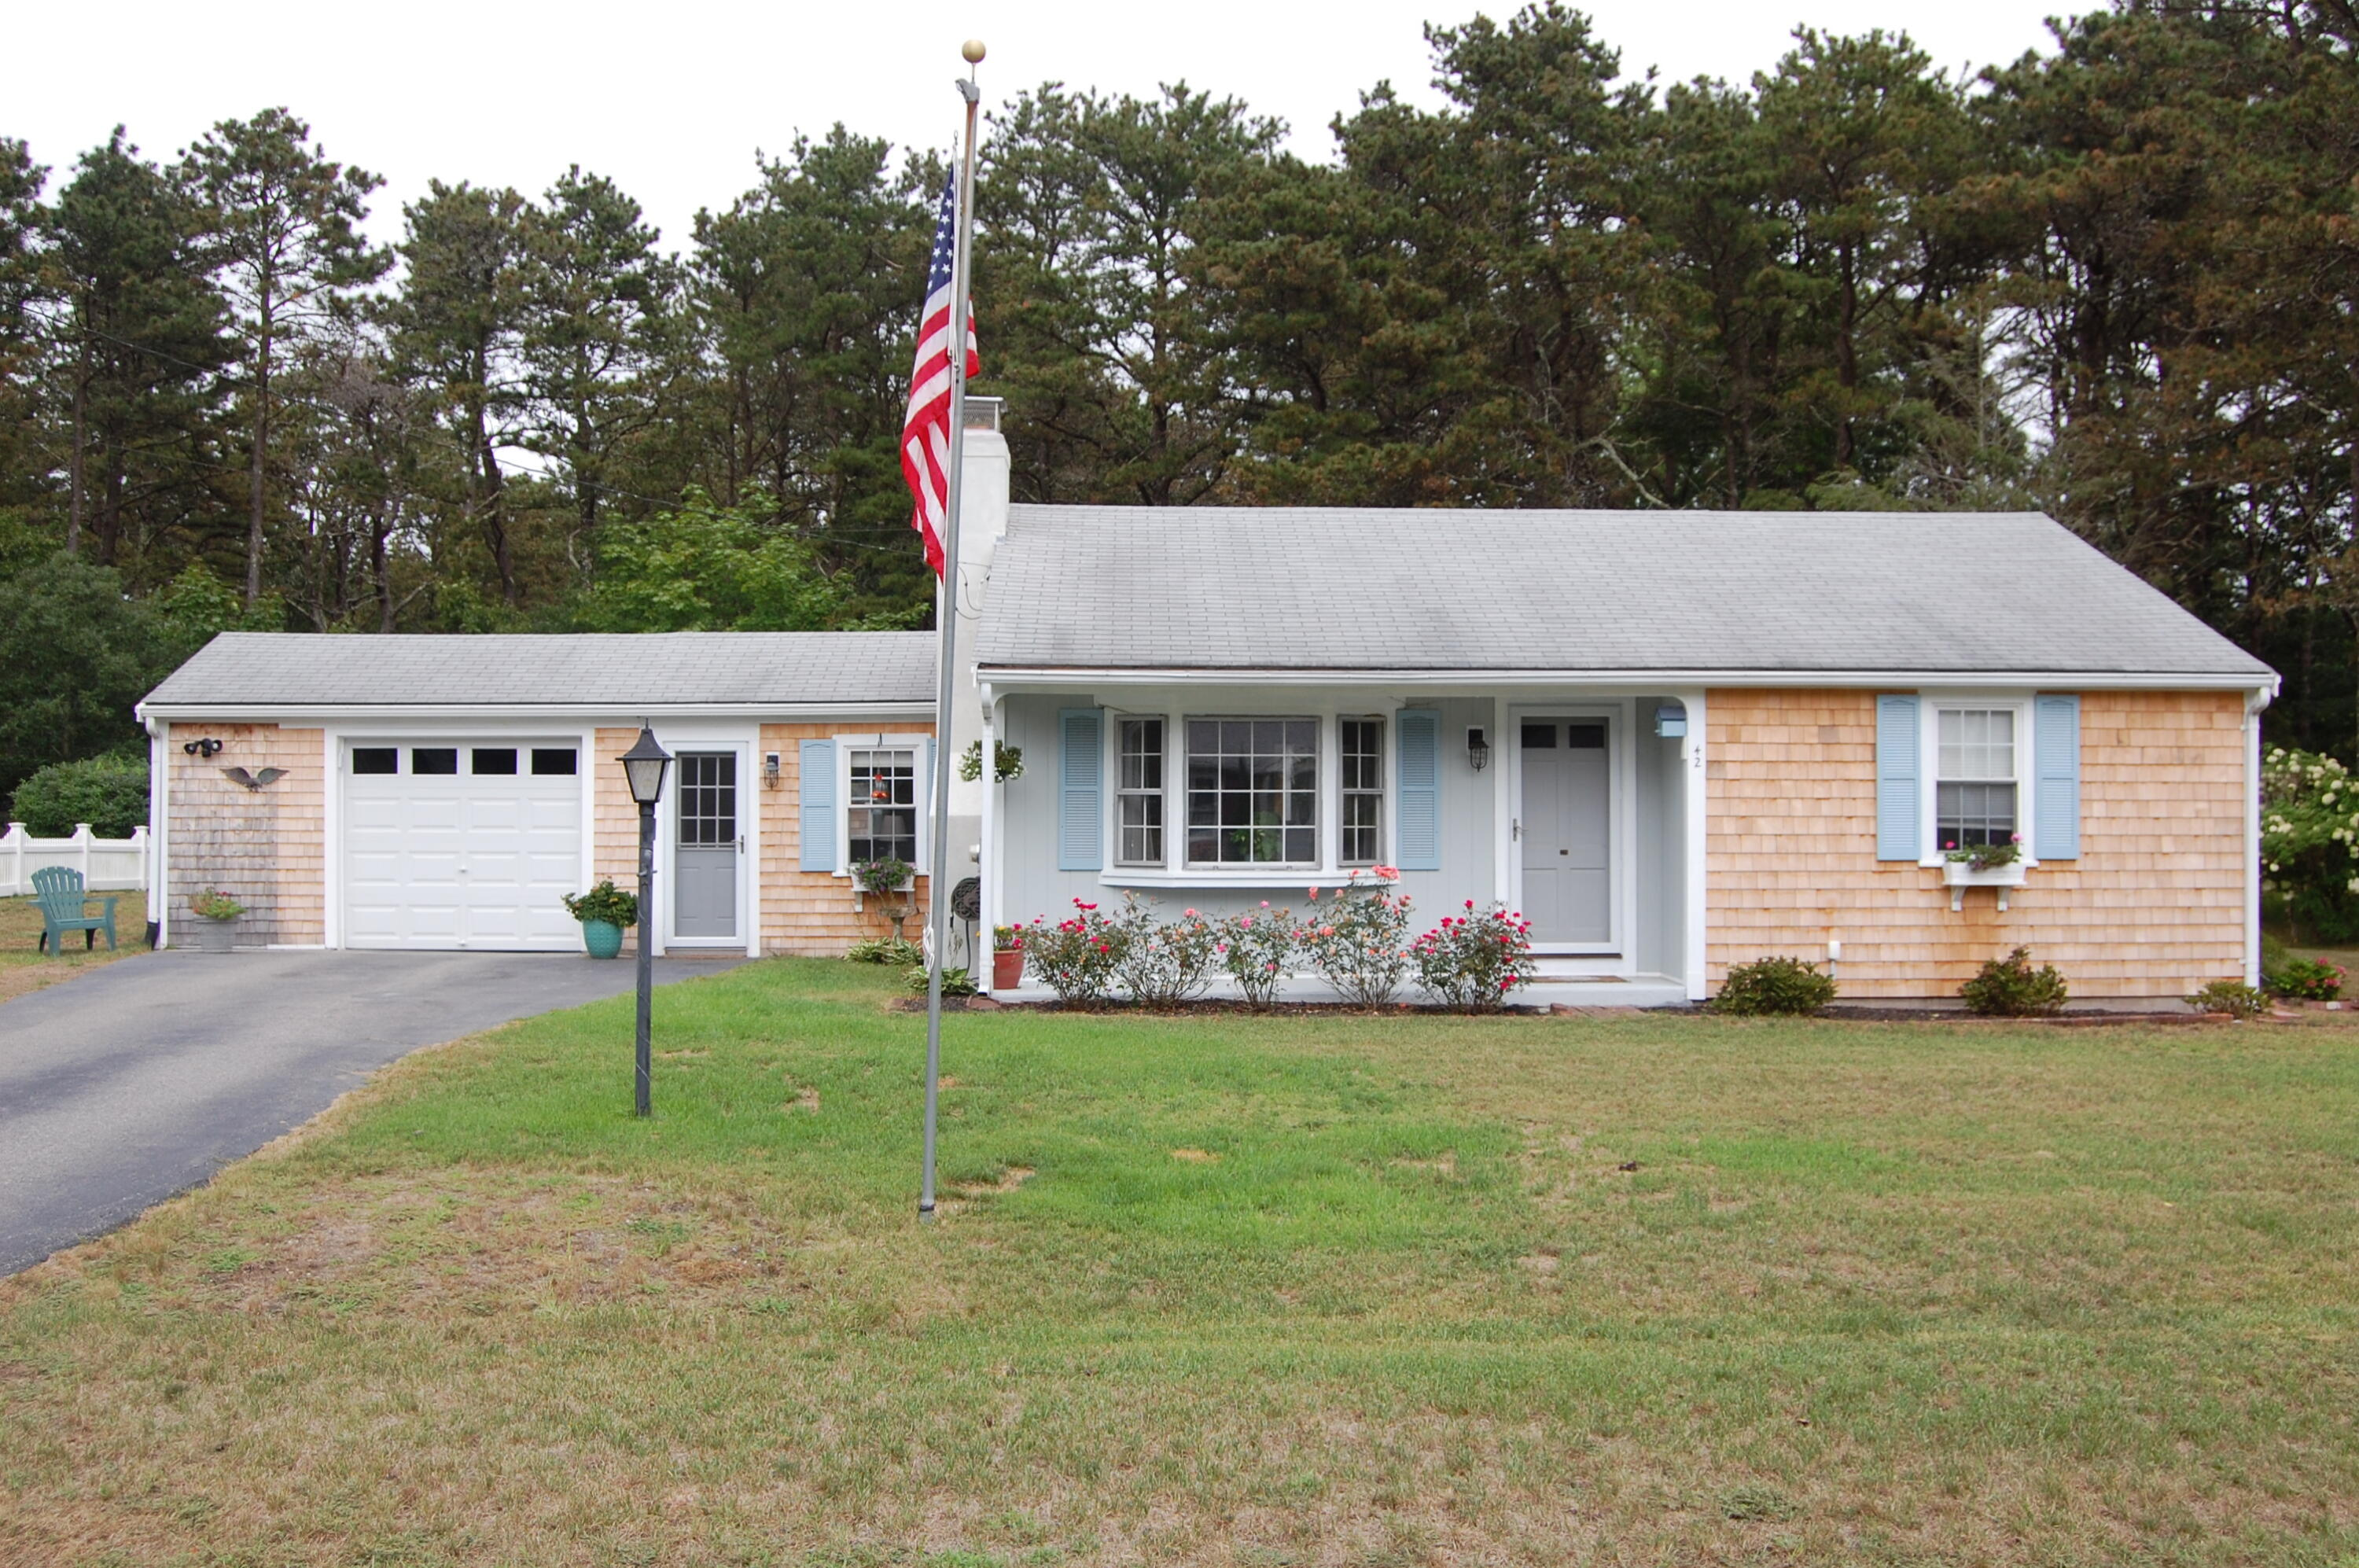 42 Browning Avenue, South Yarmouth MA, 02664 details